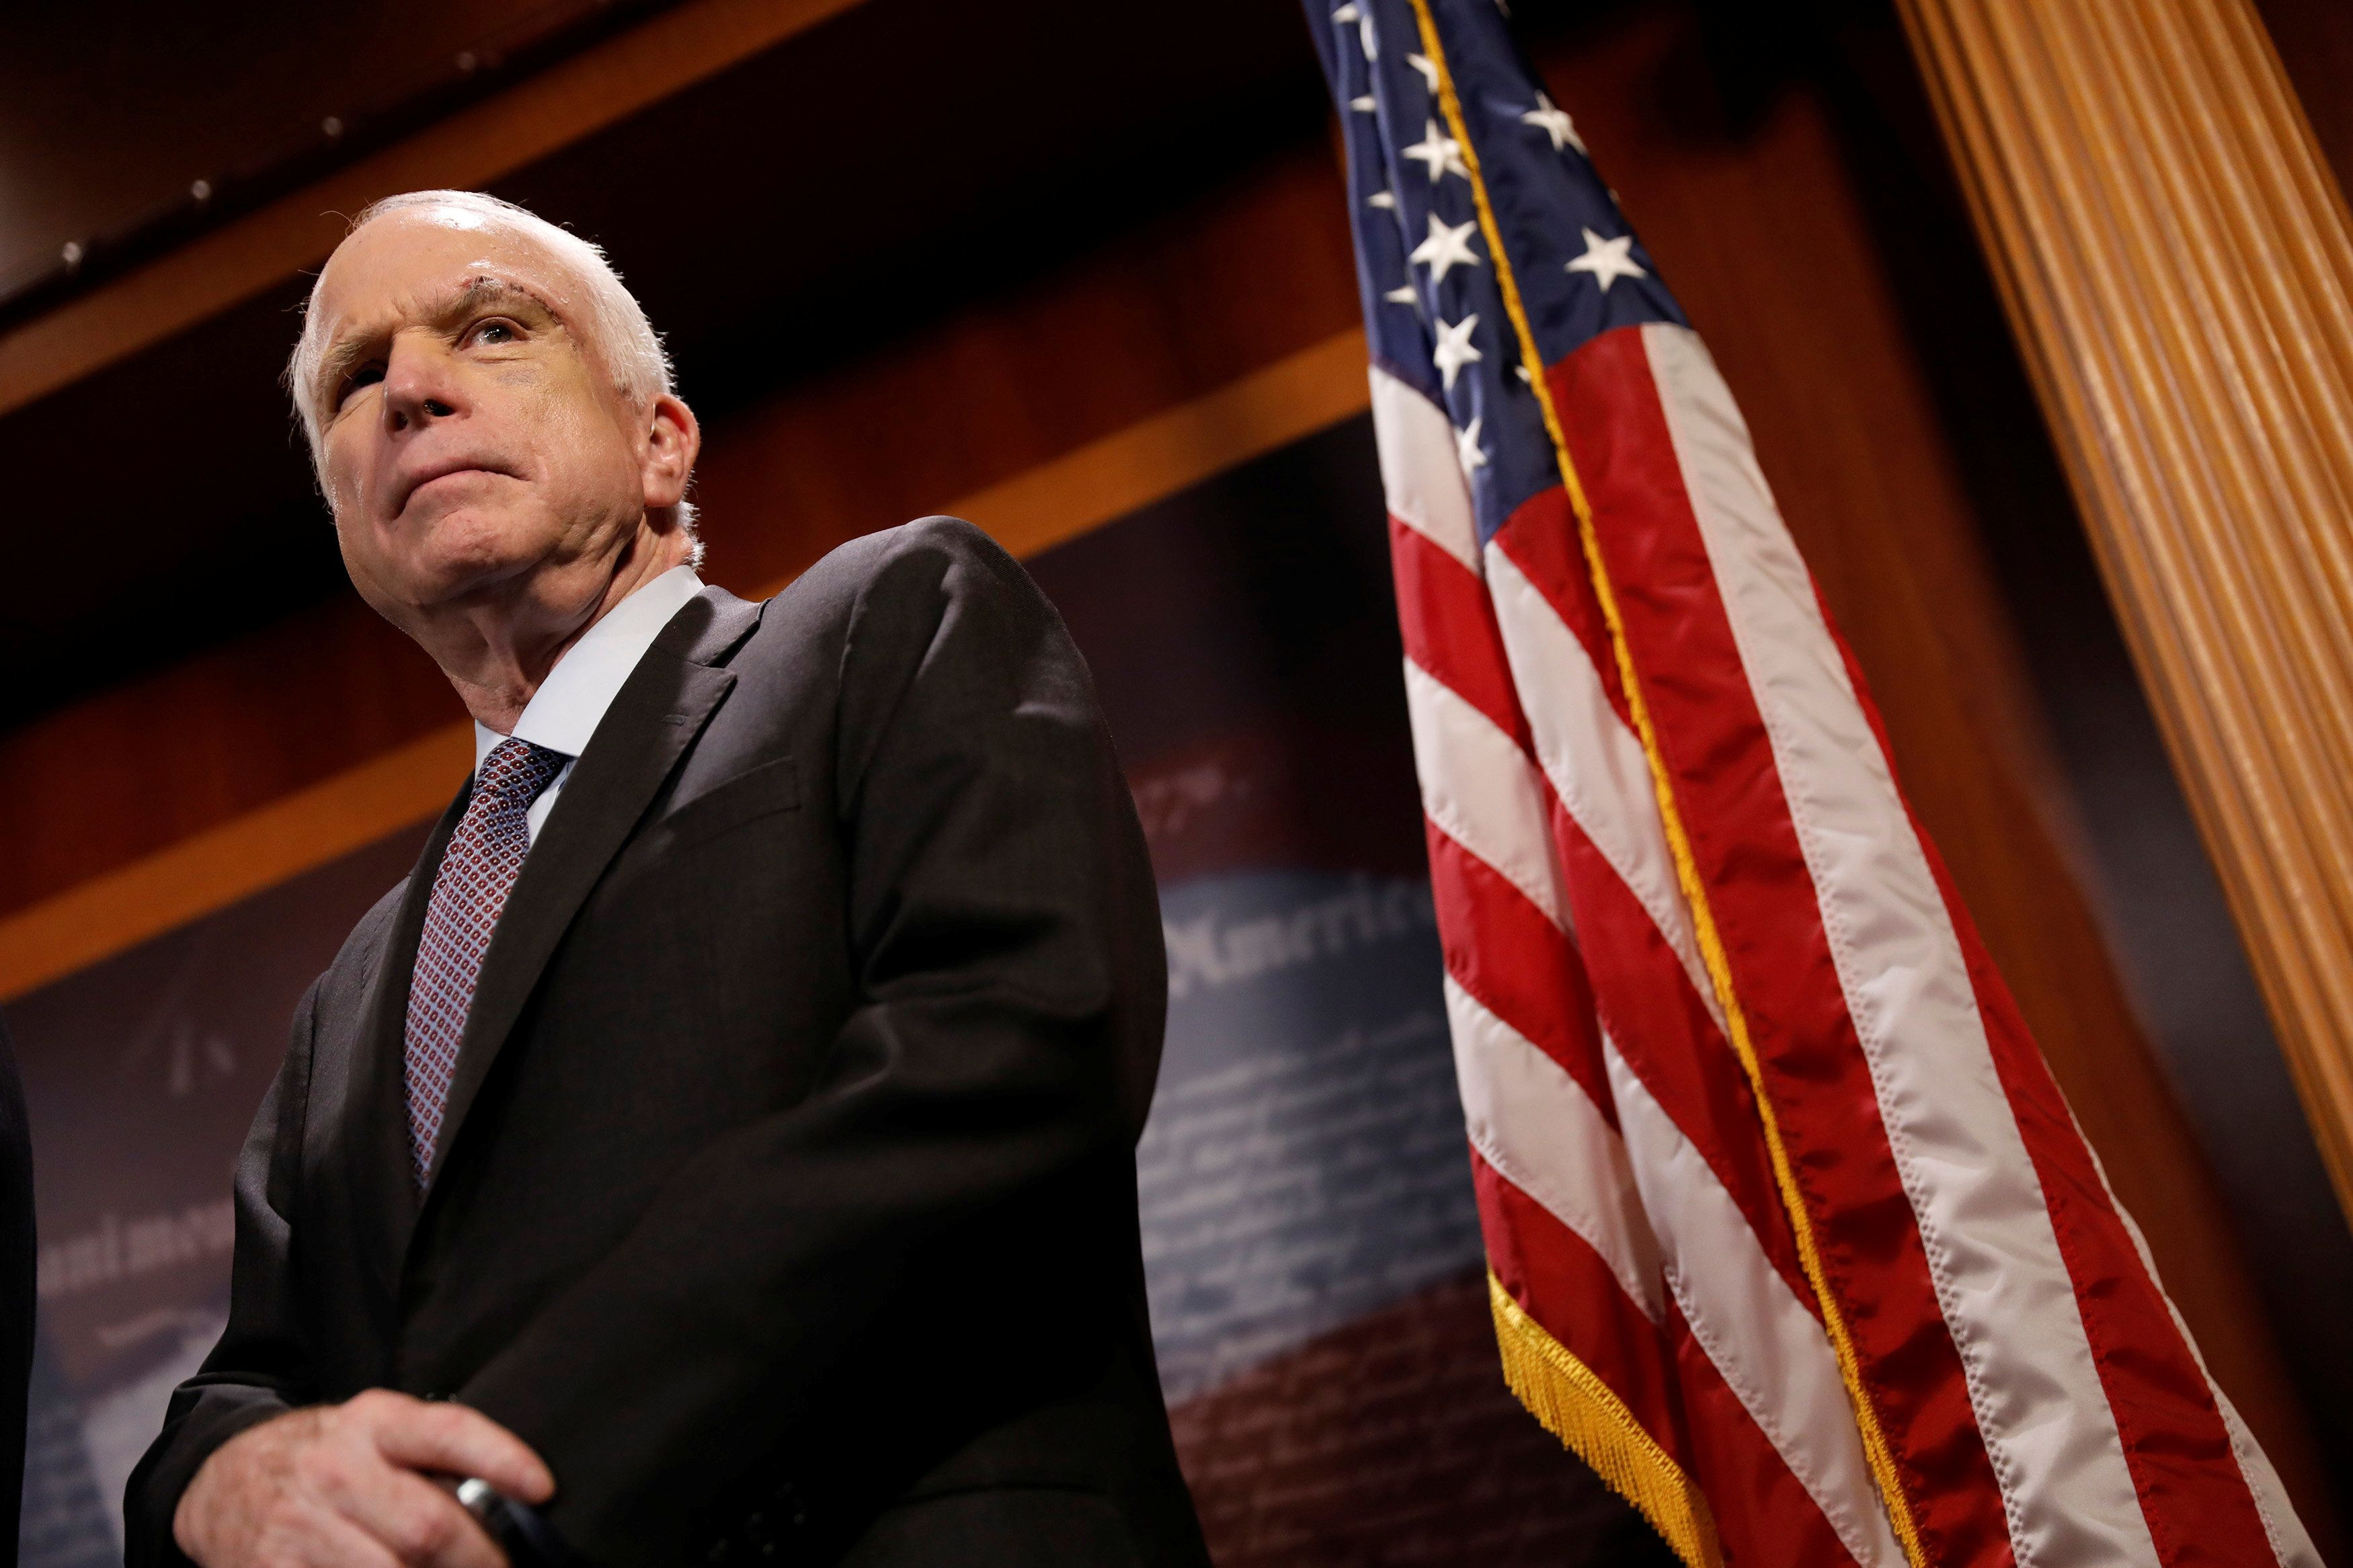 """Senator John McCain (R-AZ) looks on during a press conference about his resistance to the so-called """"Skinny Repeal"""" of the Affordable Care Act on Capitol Hill in Washington, U.S., July 27, 2017. REUTERS/Aaron P. Bernstein"""